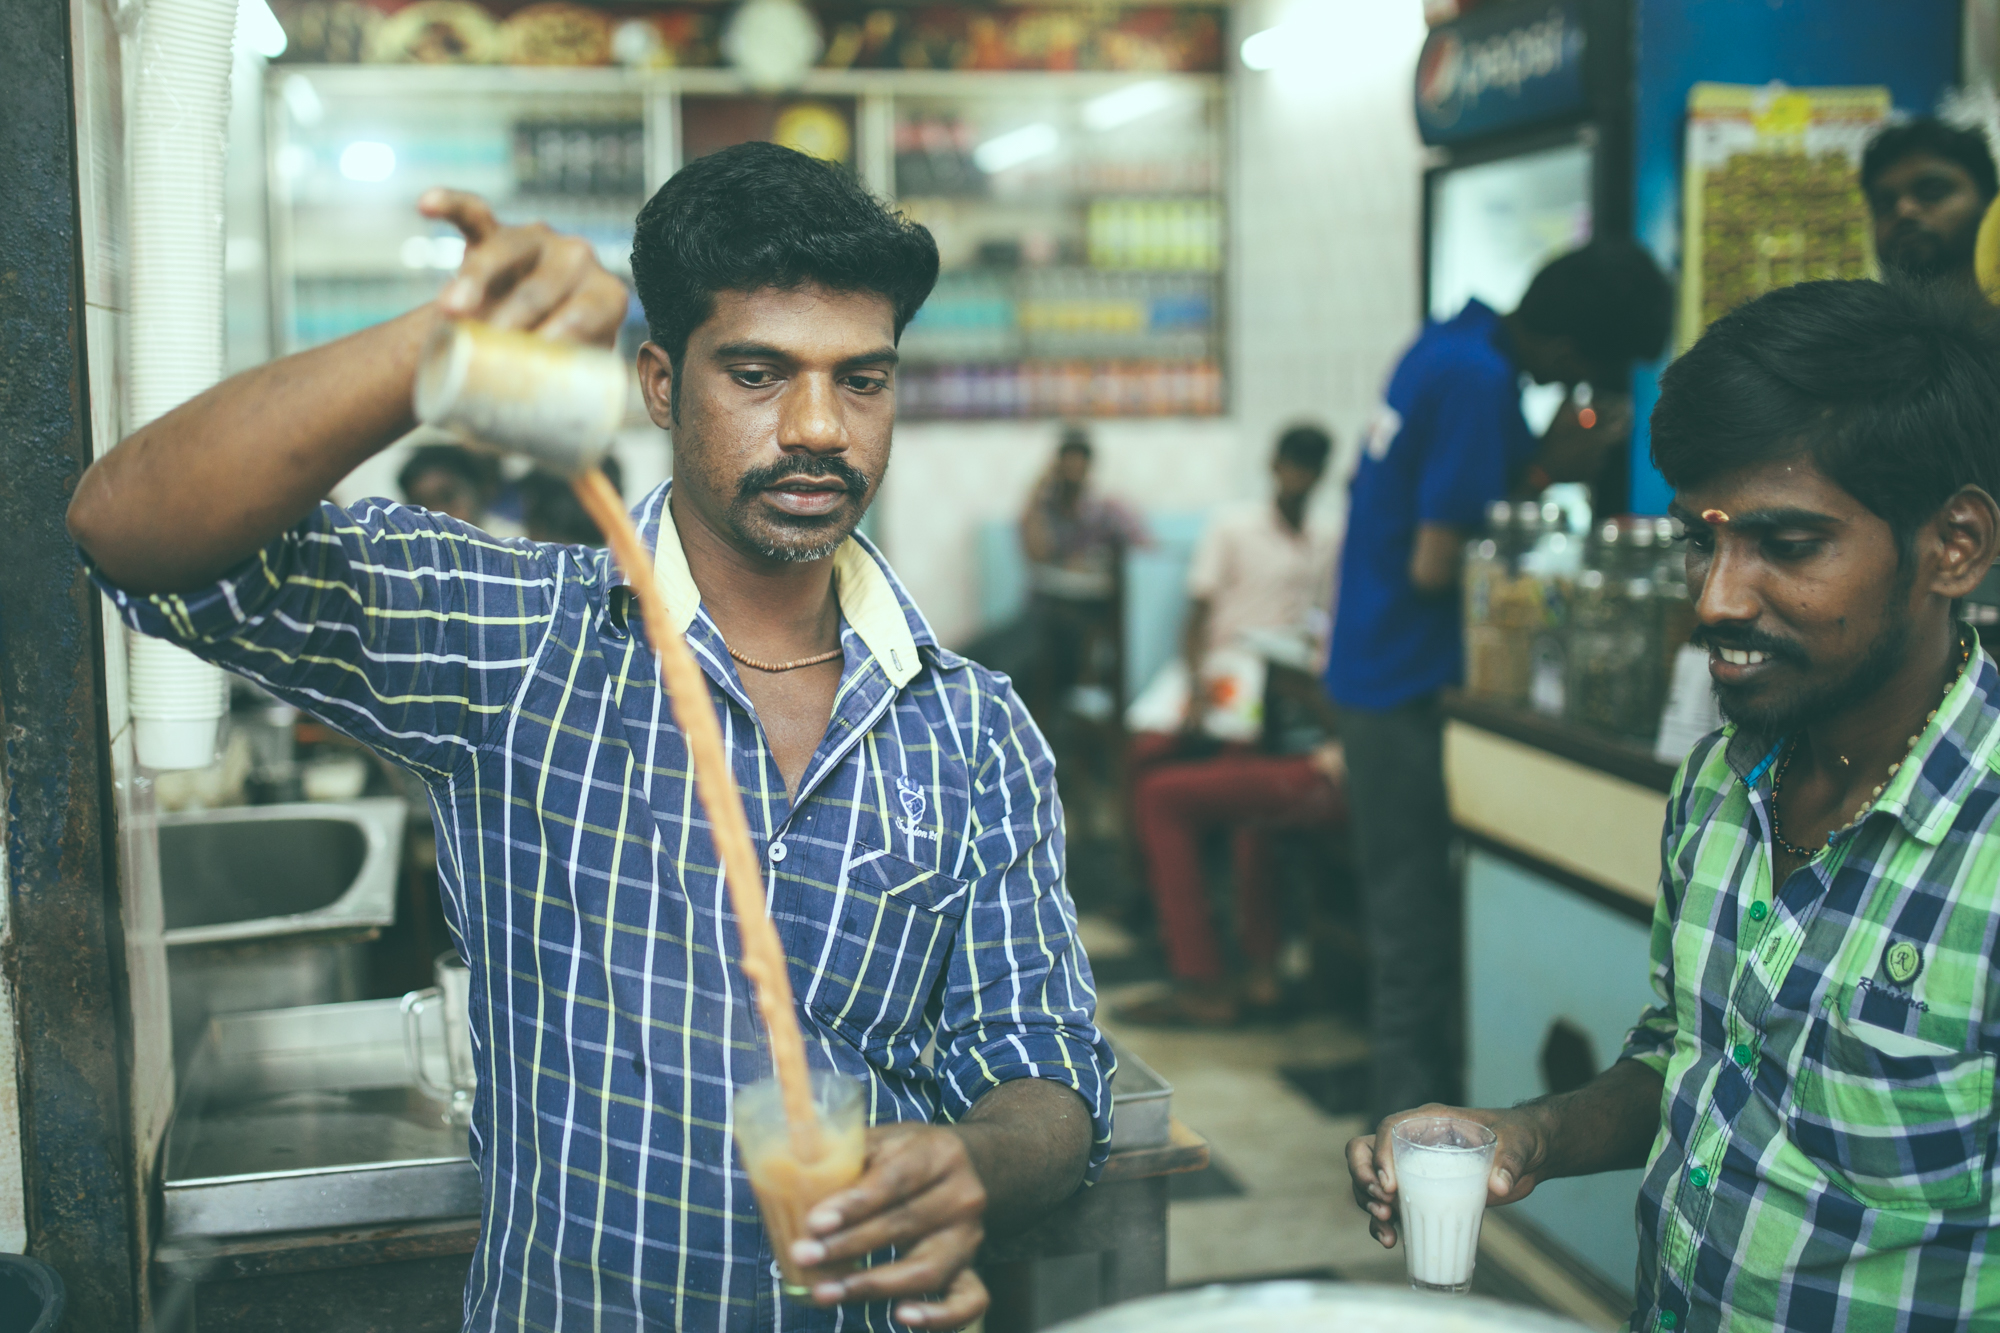 Chennai,  Vinay Aravind . The teashops in Thiruvanmiyur open around 5 am and stay open late into night, often beyond midnight. There's always tea and milk simmering on the stove. The chap who does the pouring ends with a flick of his wrist, leaving a long trail of tea suspended in the air for one glorious, theatrical moment. A tea costs Rs. 8, a special tea is Rs. 10.